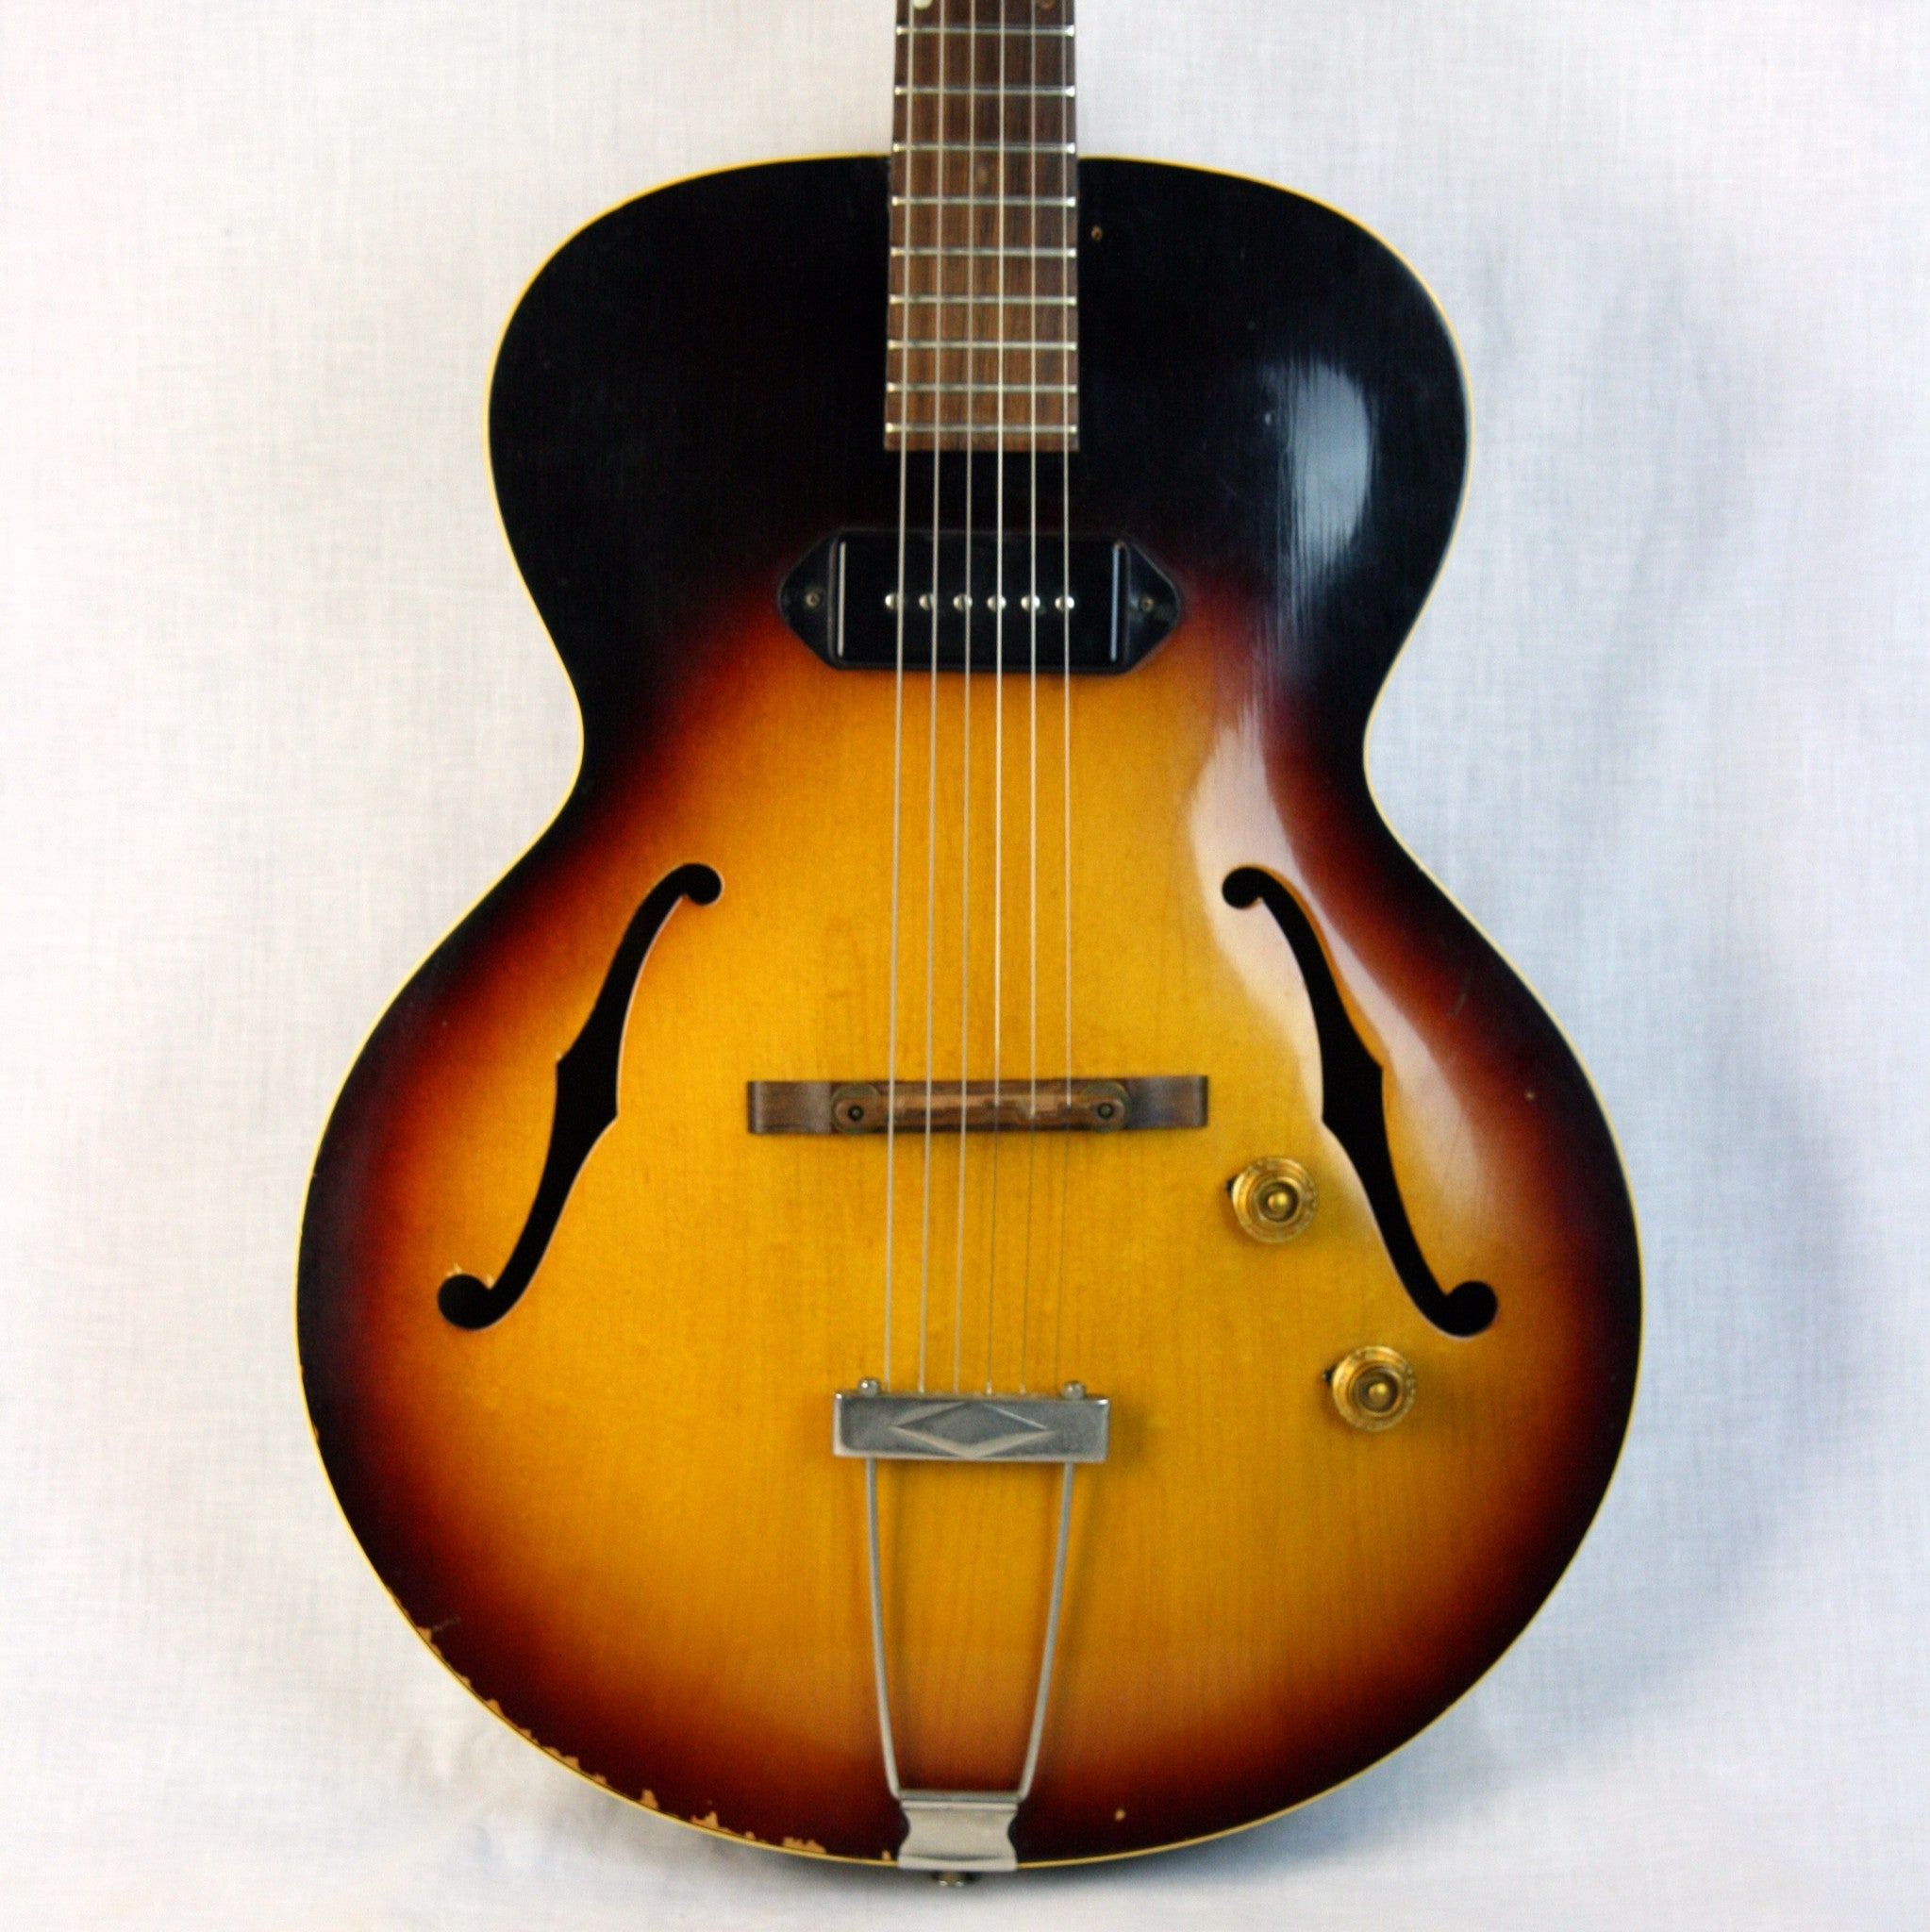 1960 Gibson ES-125T Archtop Electric Guitar